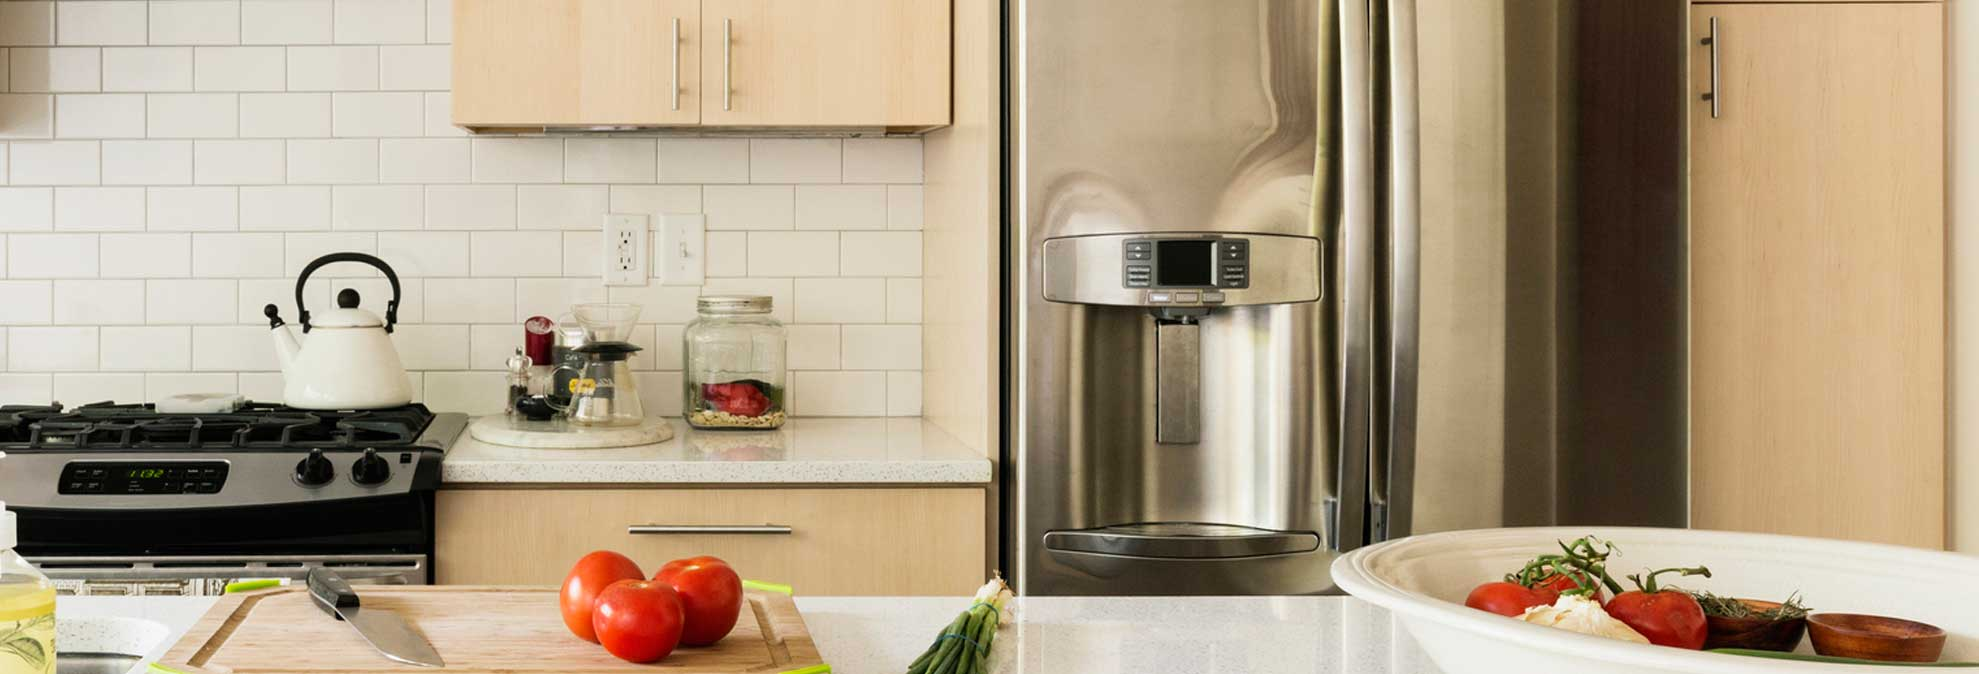 Best Refrigerators of 2018 - Consumer Reports